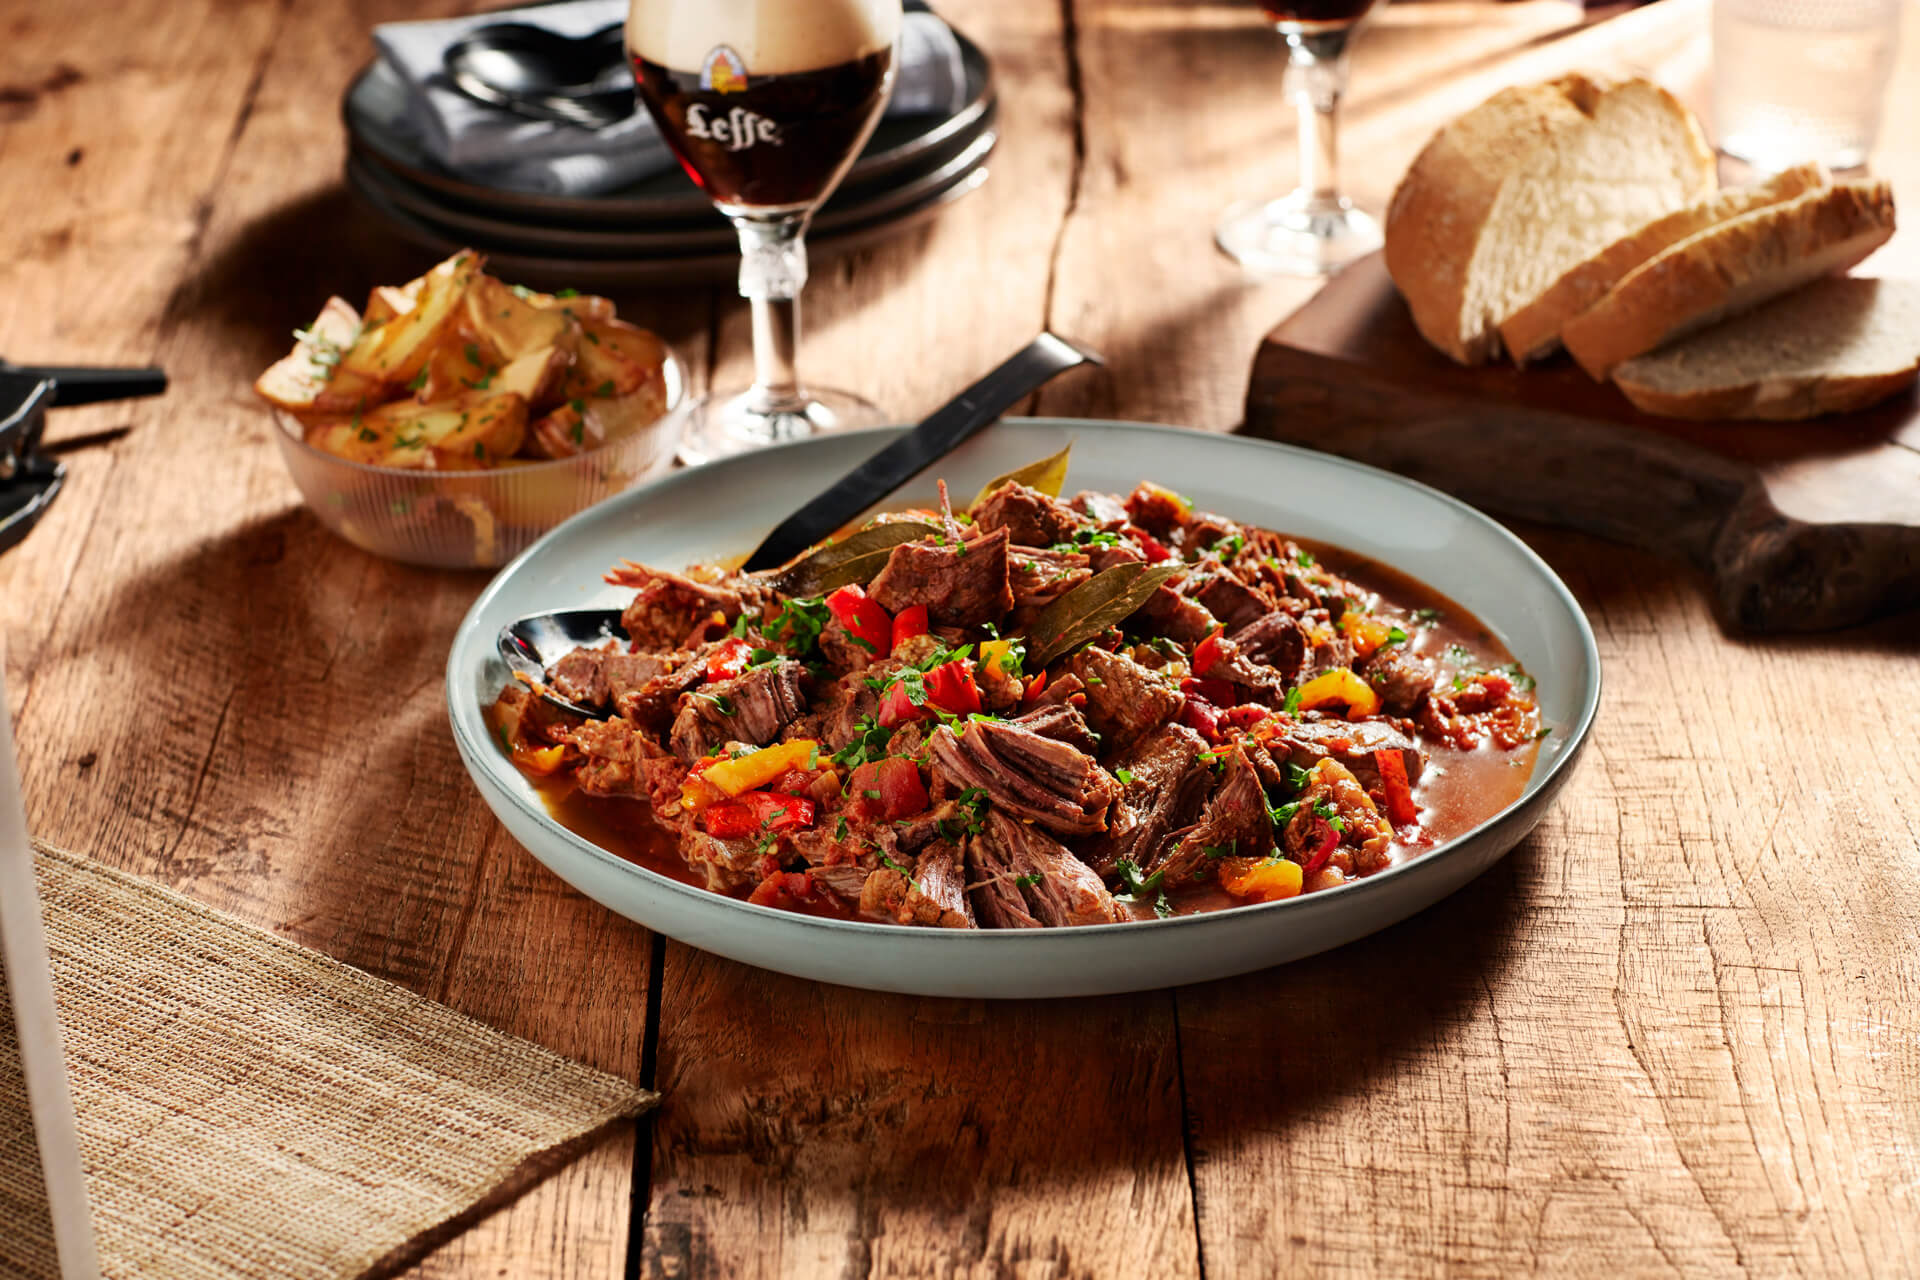 Leffe - food photography by Erik de Koning - stew and beer